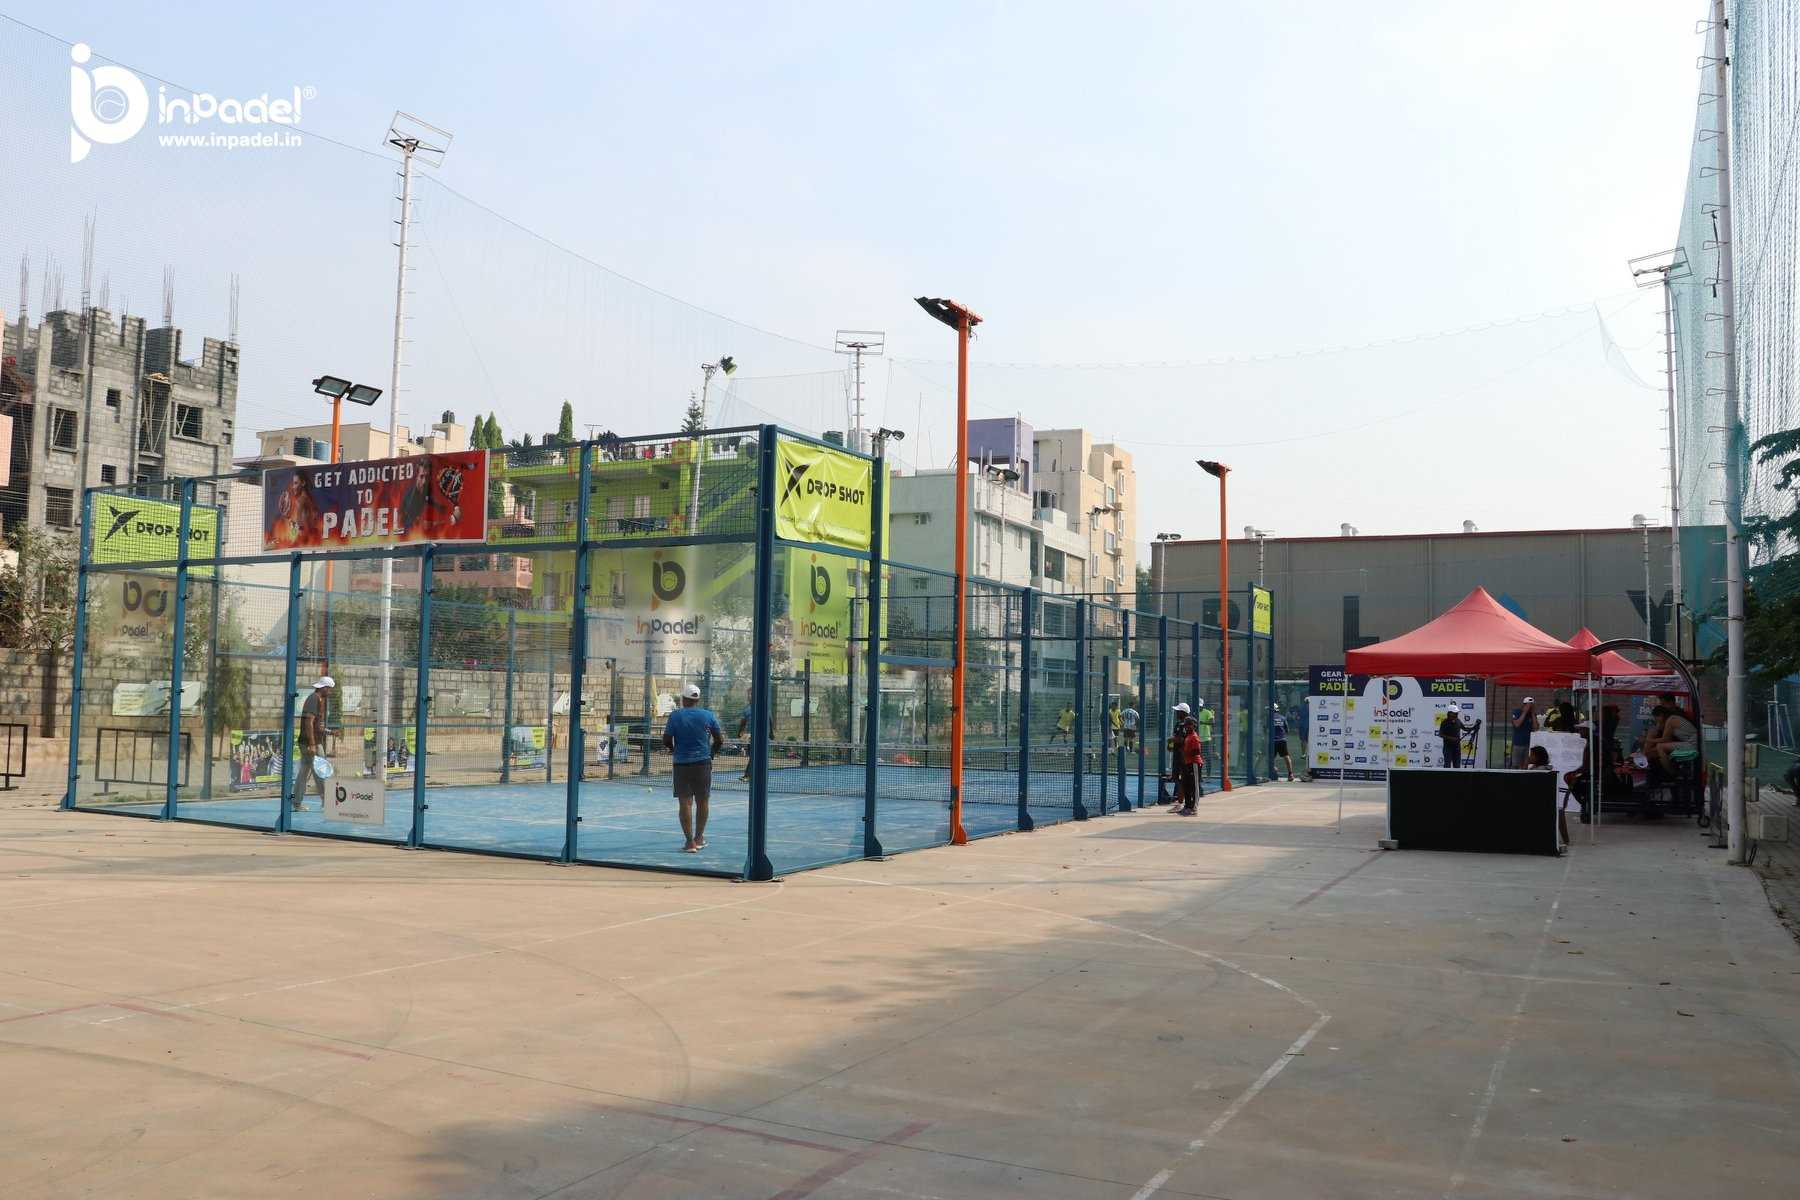 InPadel 1Yr Celebration of Padel in INDIA - Padel - Padel India (50)